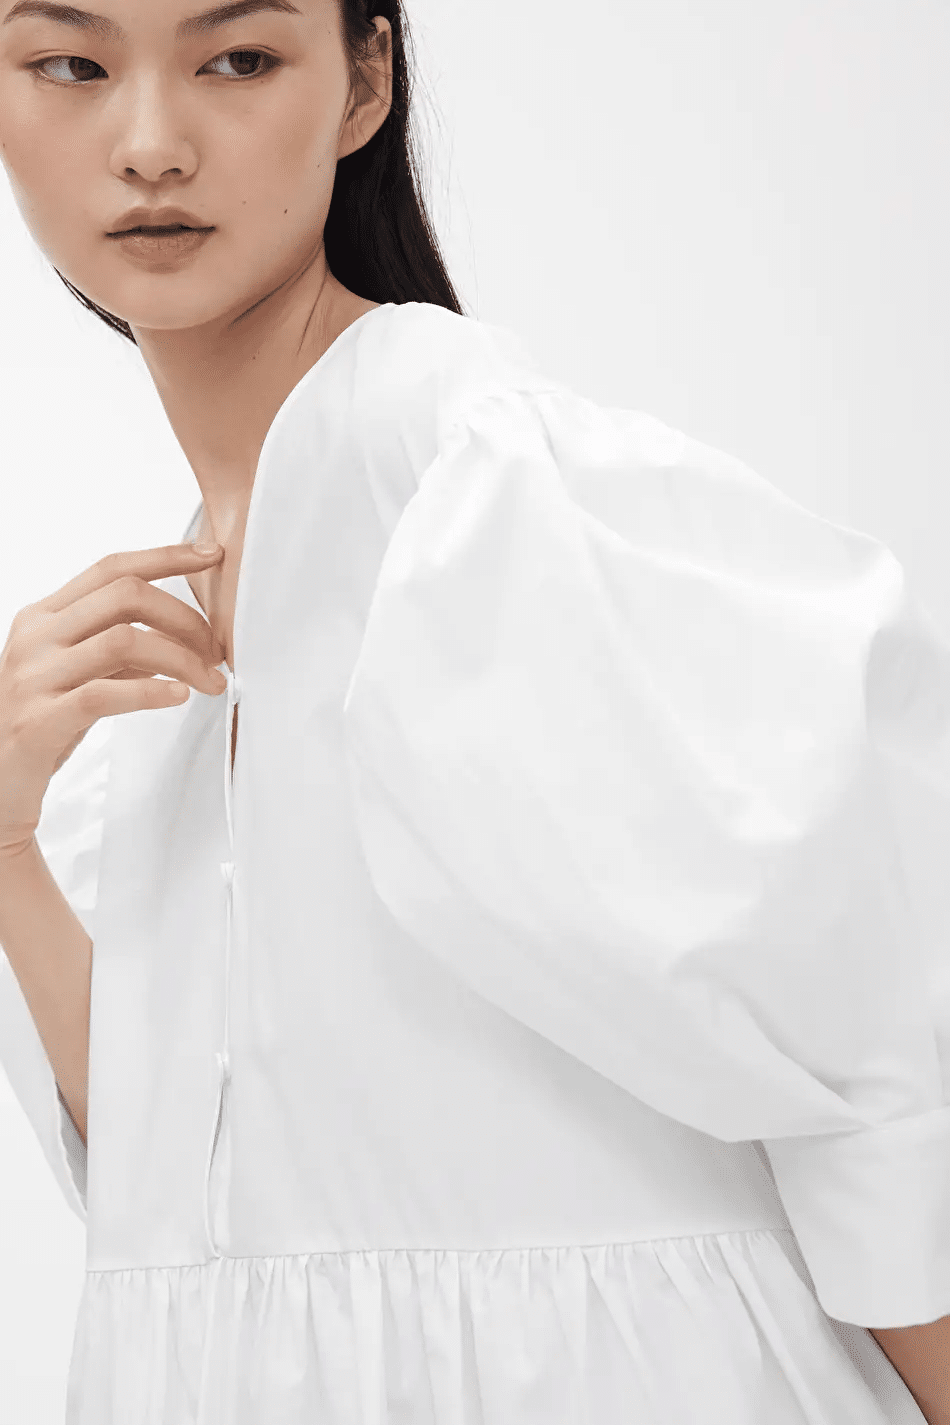 Model poses in white puff-sleeved blouse